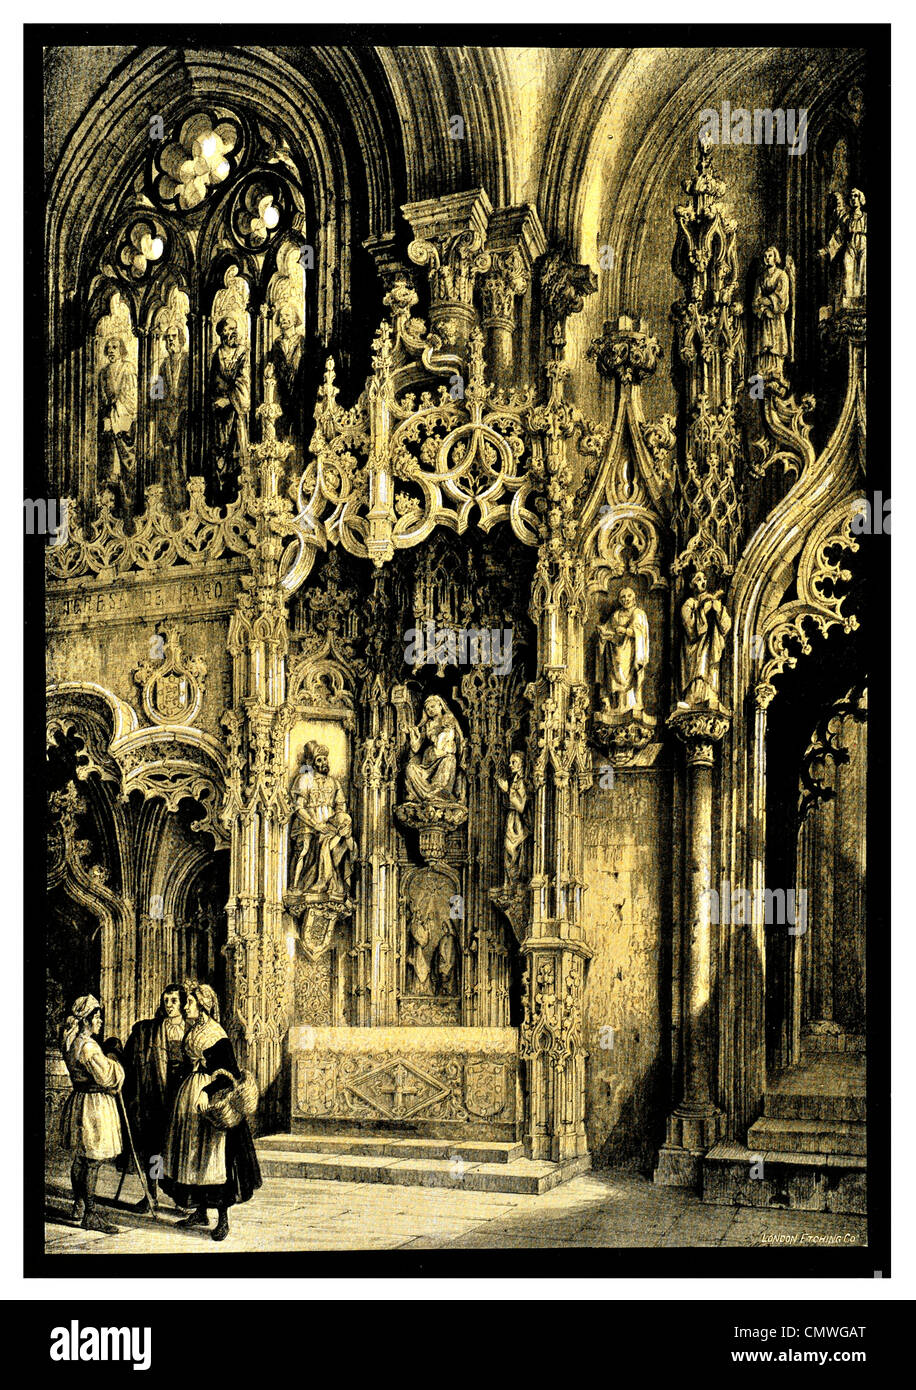 1904 Spanish Cathedral interior - Stock Image